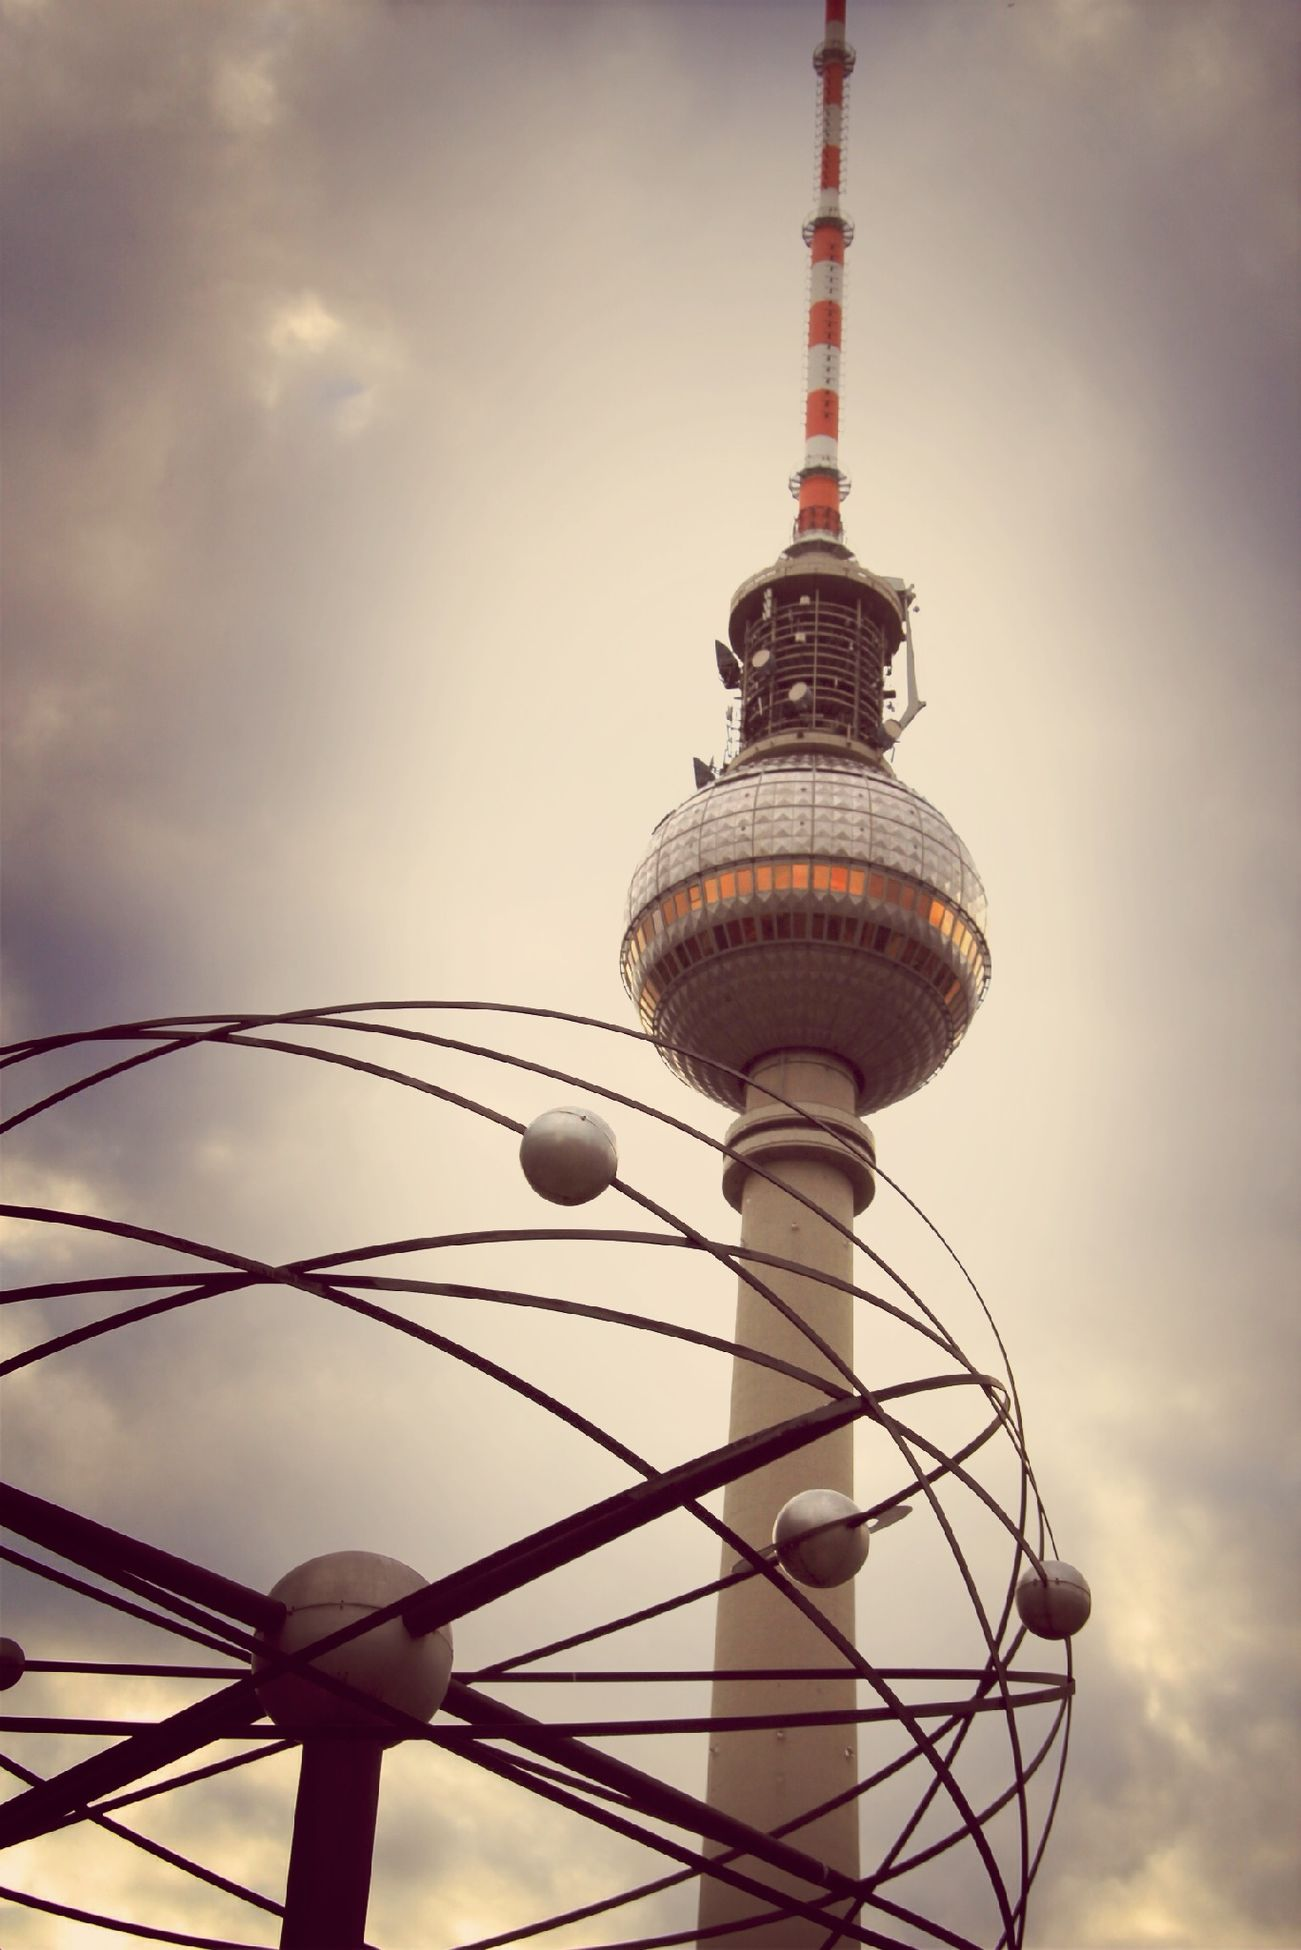 tower, architecture, built structure, tall - high, low angle view, communications tower, international landmark, travel destinations, tourism, famous place, capital cities, sky, travel, building exterior, communication, television tower, fernsehturm, spire, city, sphere